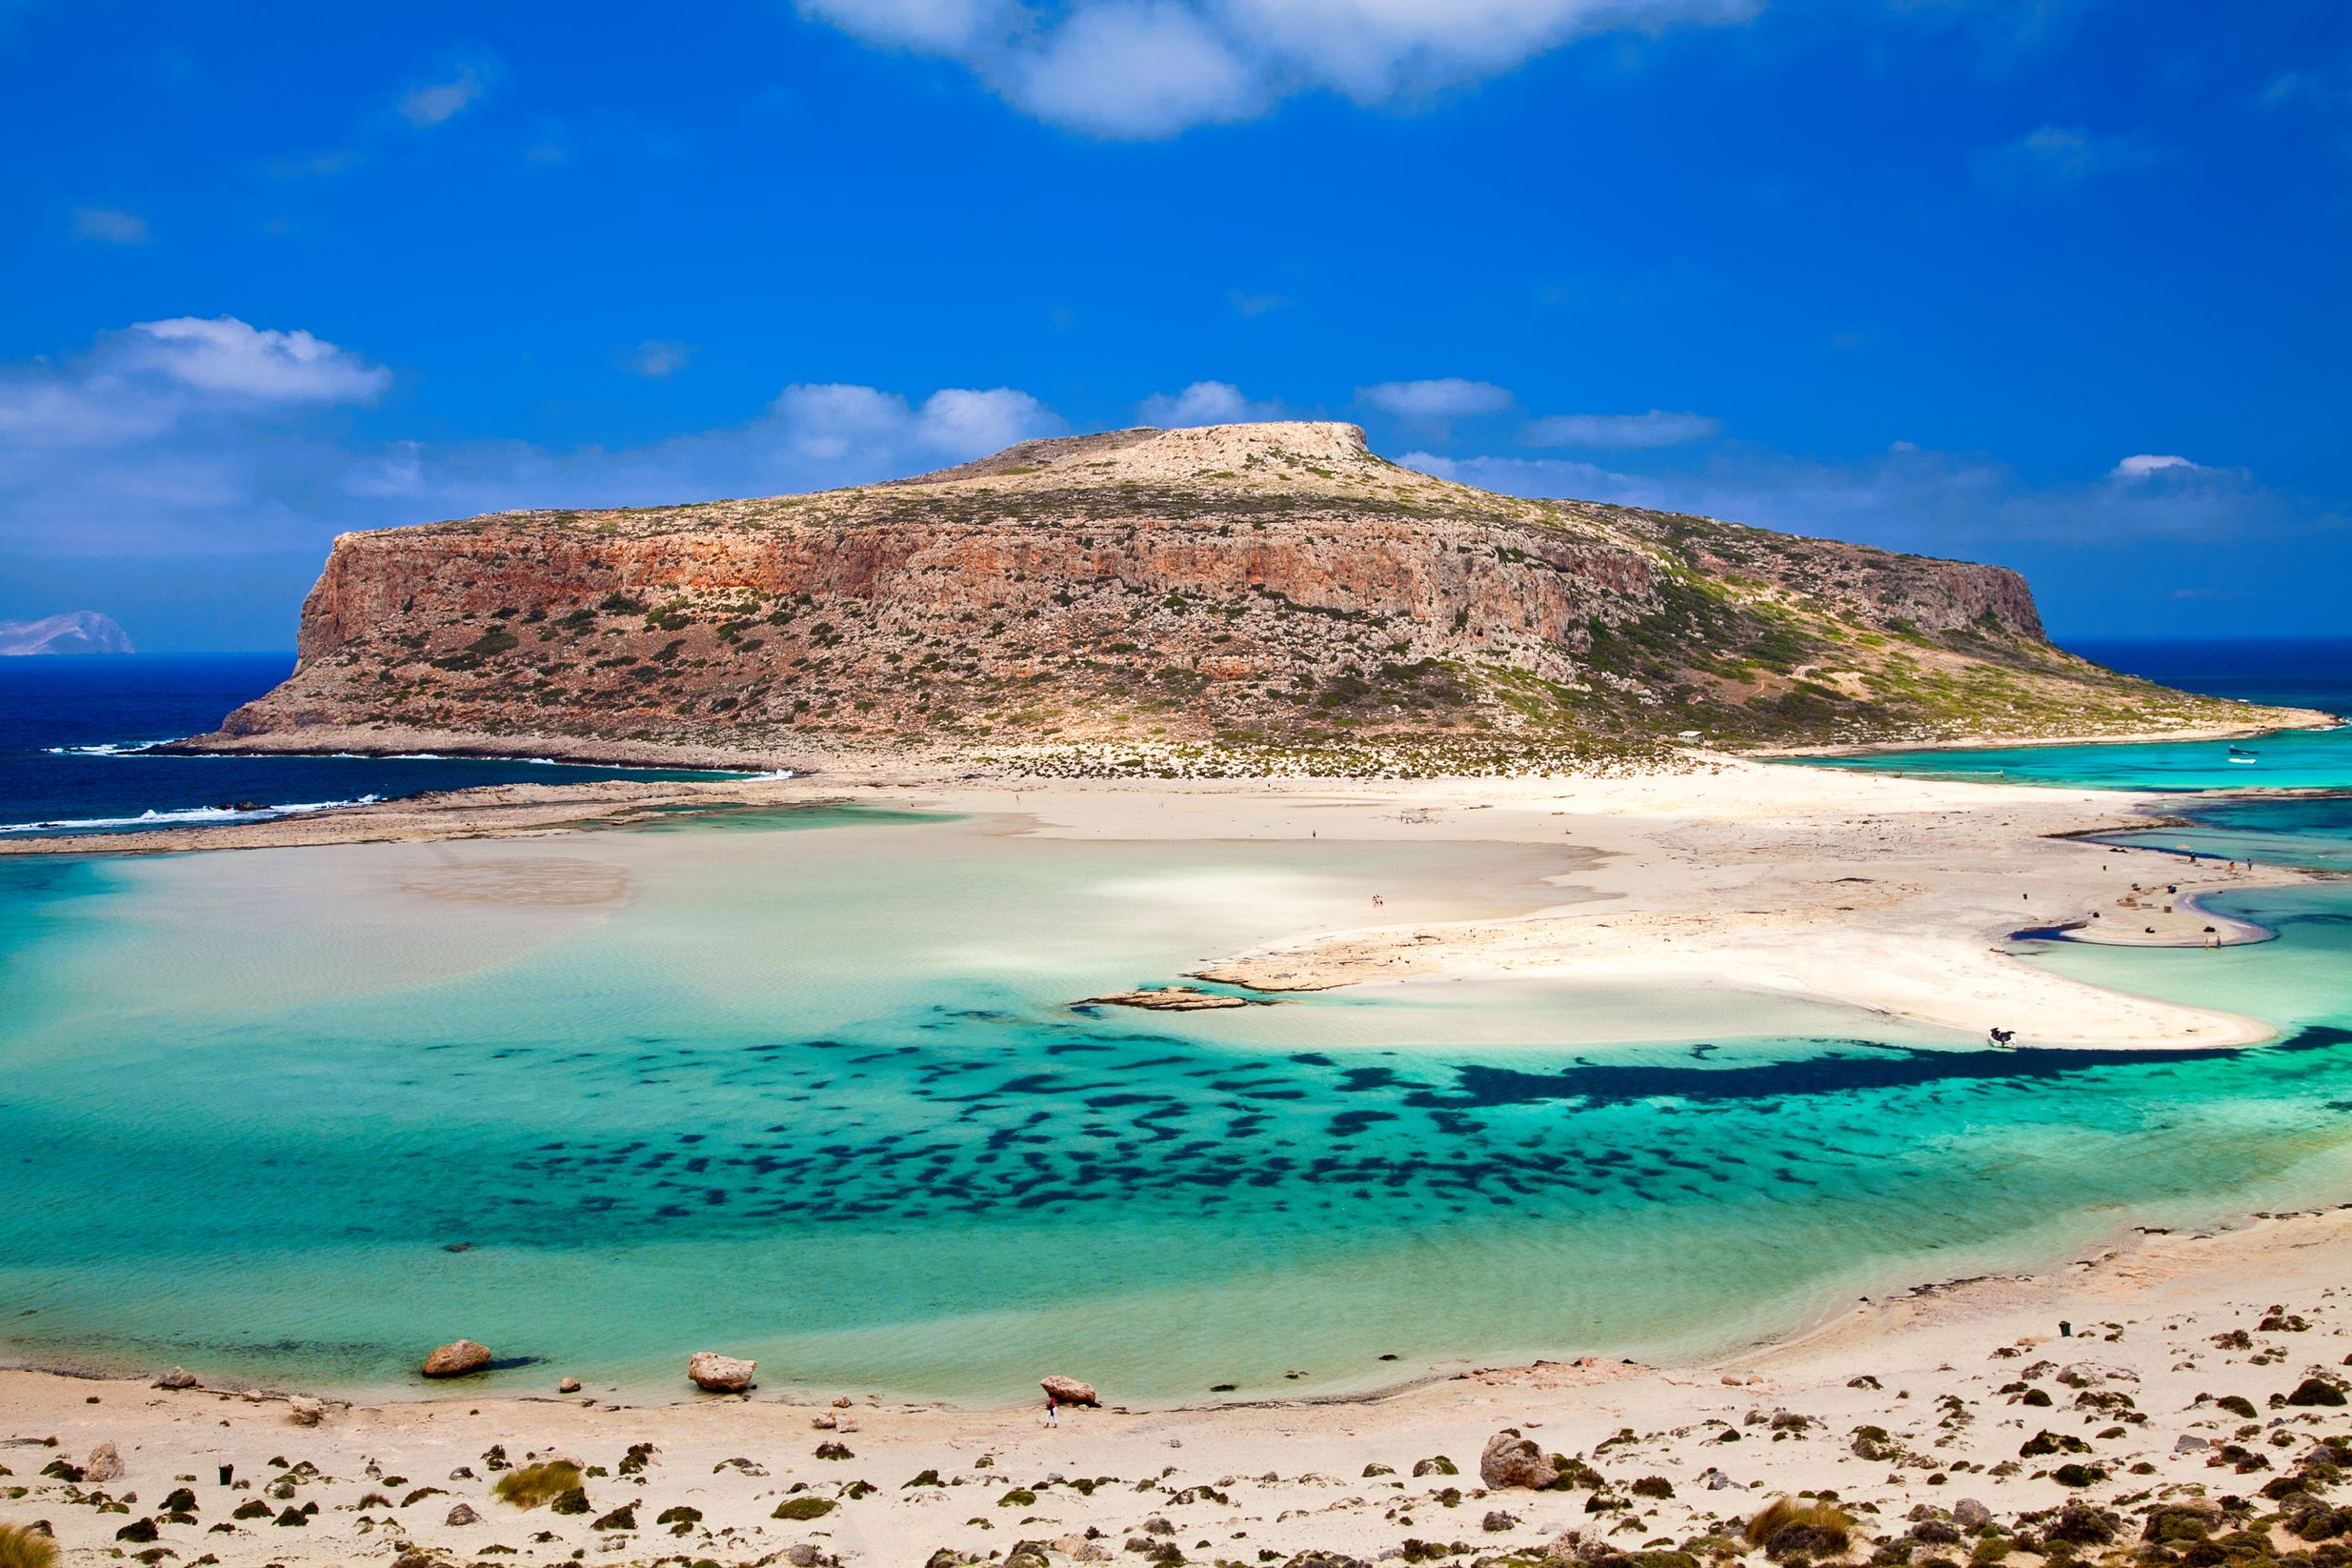 Balos beach, Chania, Crete - one of the best holiday destinations in the Mediterranean for summer 2019